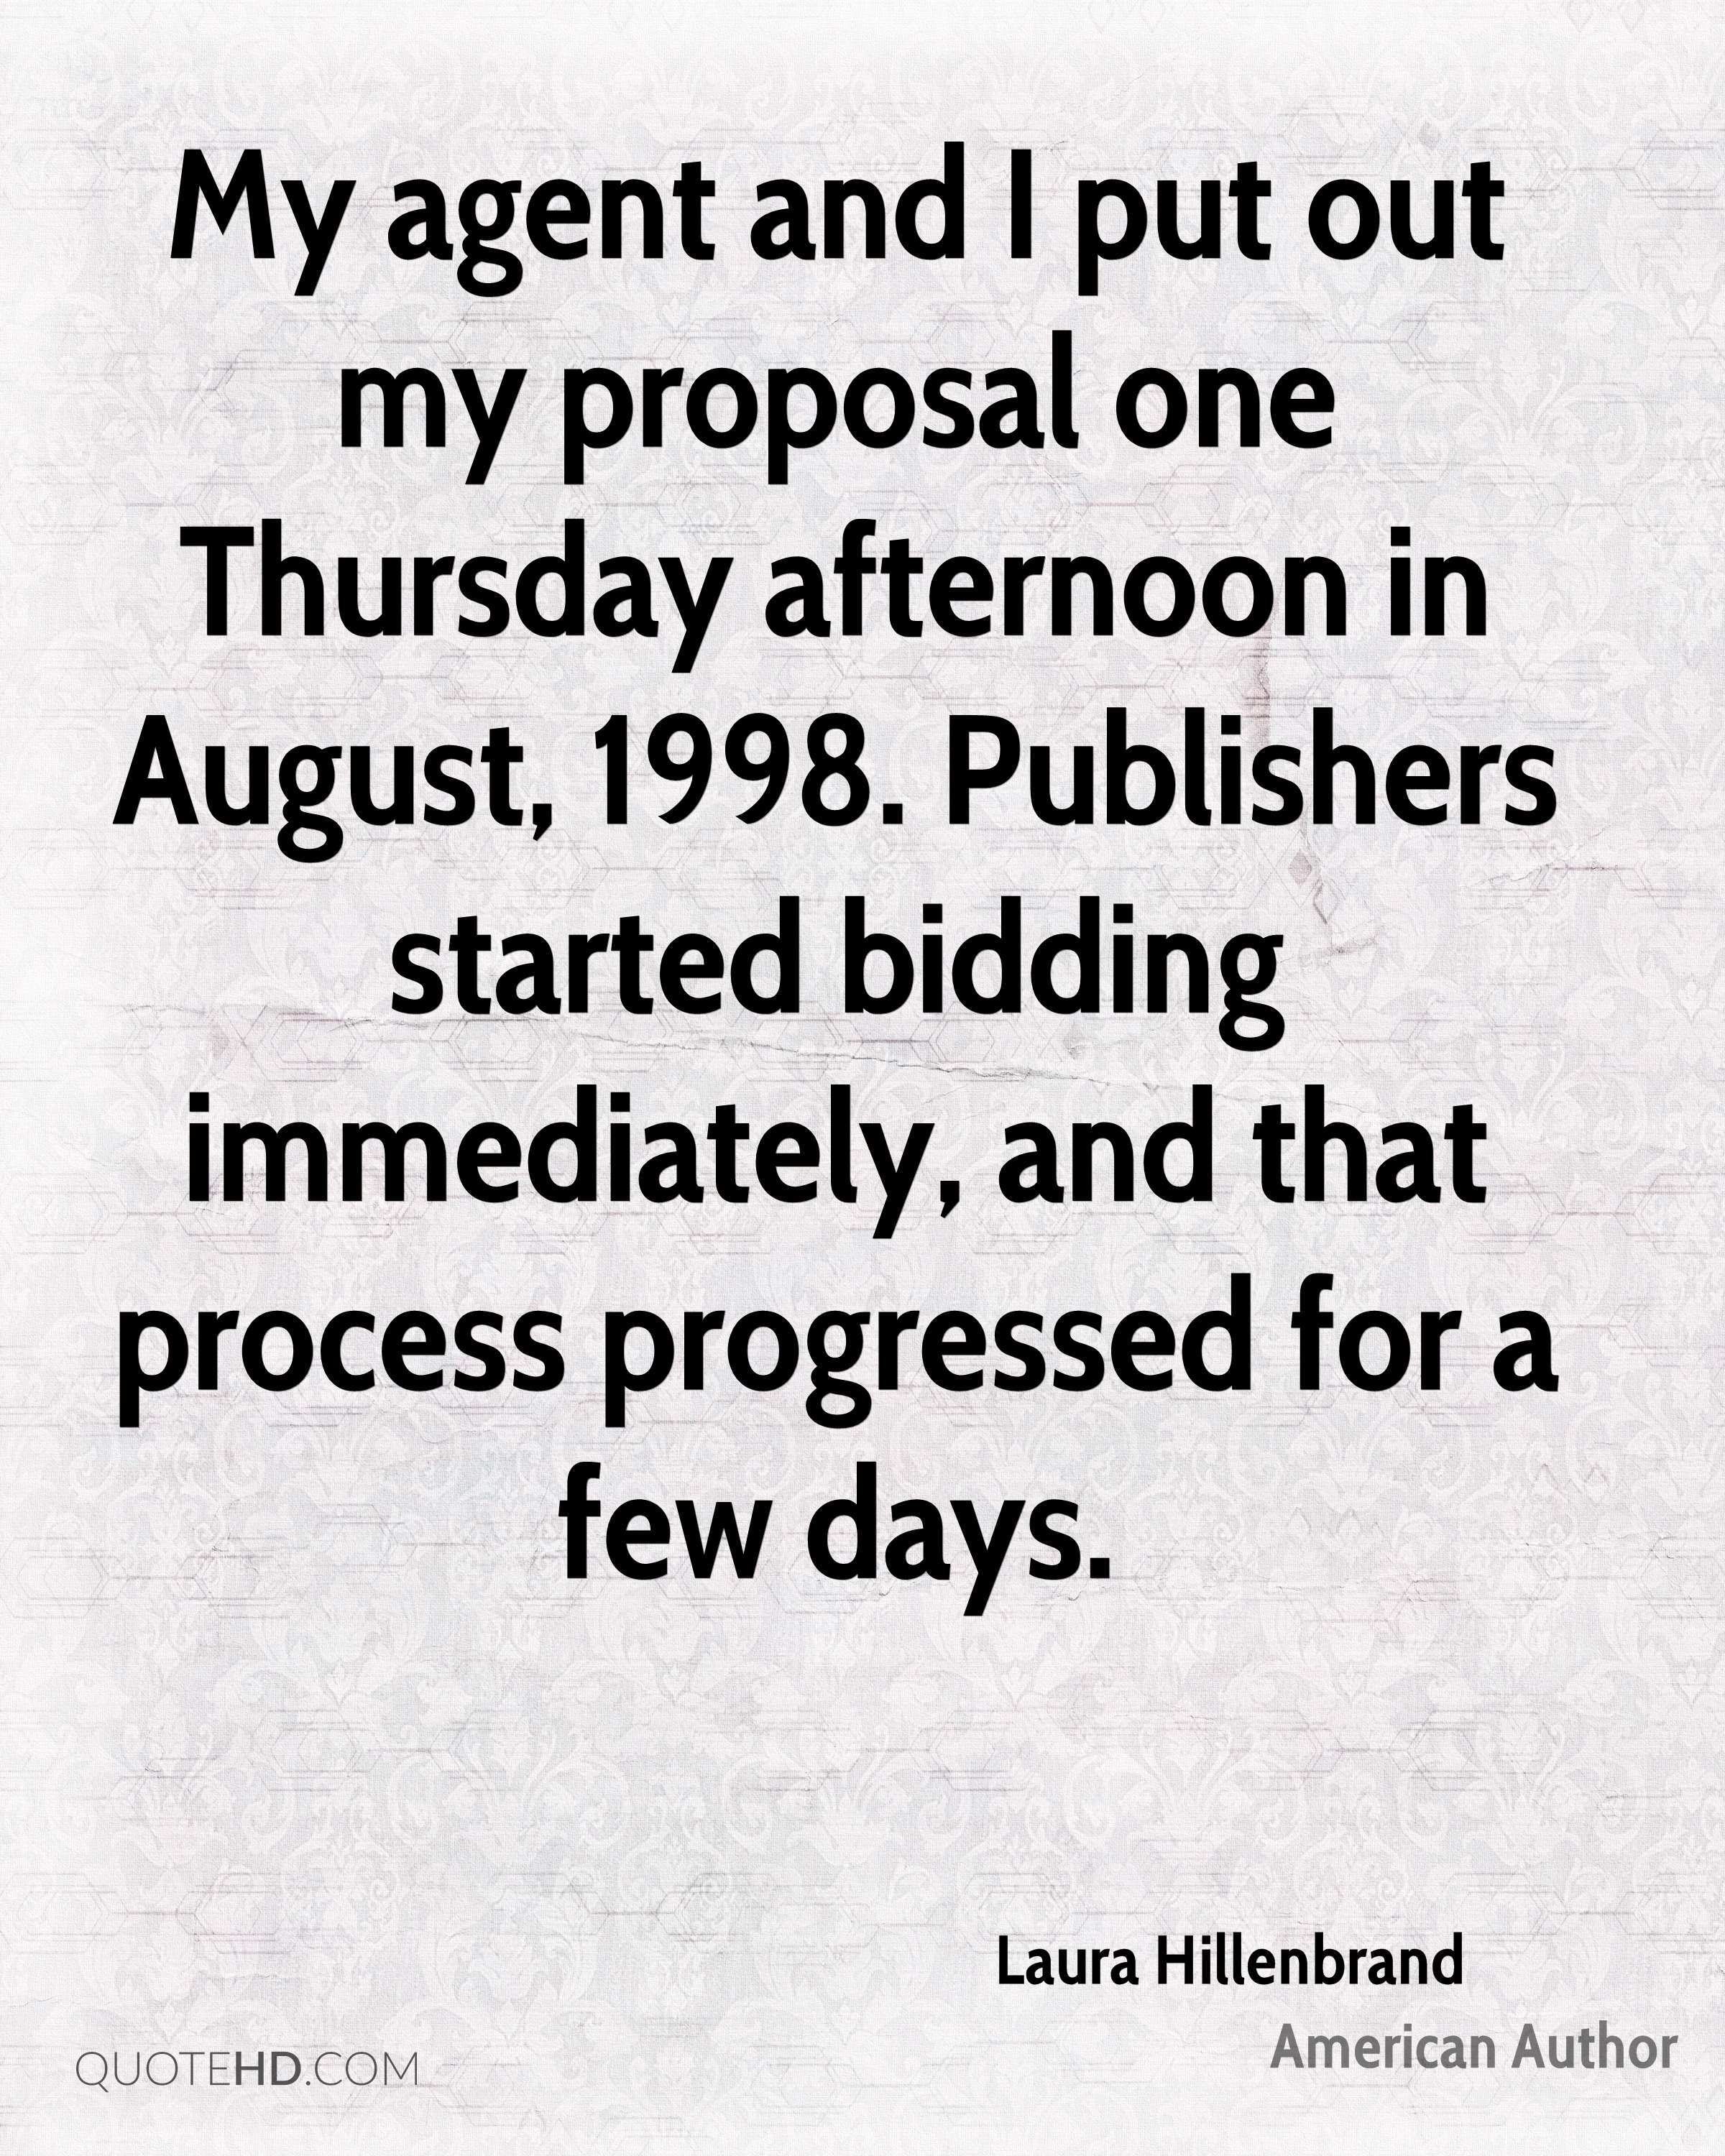 My agent and I put out my proposal one Thursday afternoon in August, 1998. Publishers started bidding immediately, and that process progressed for a few days.